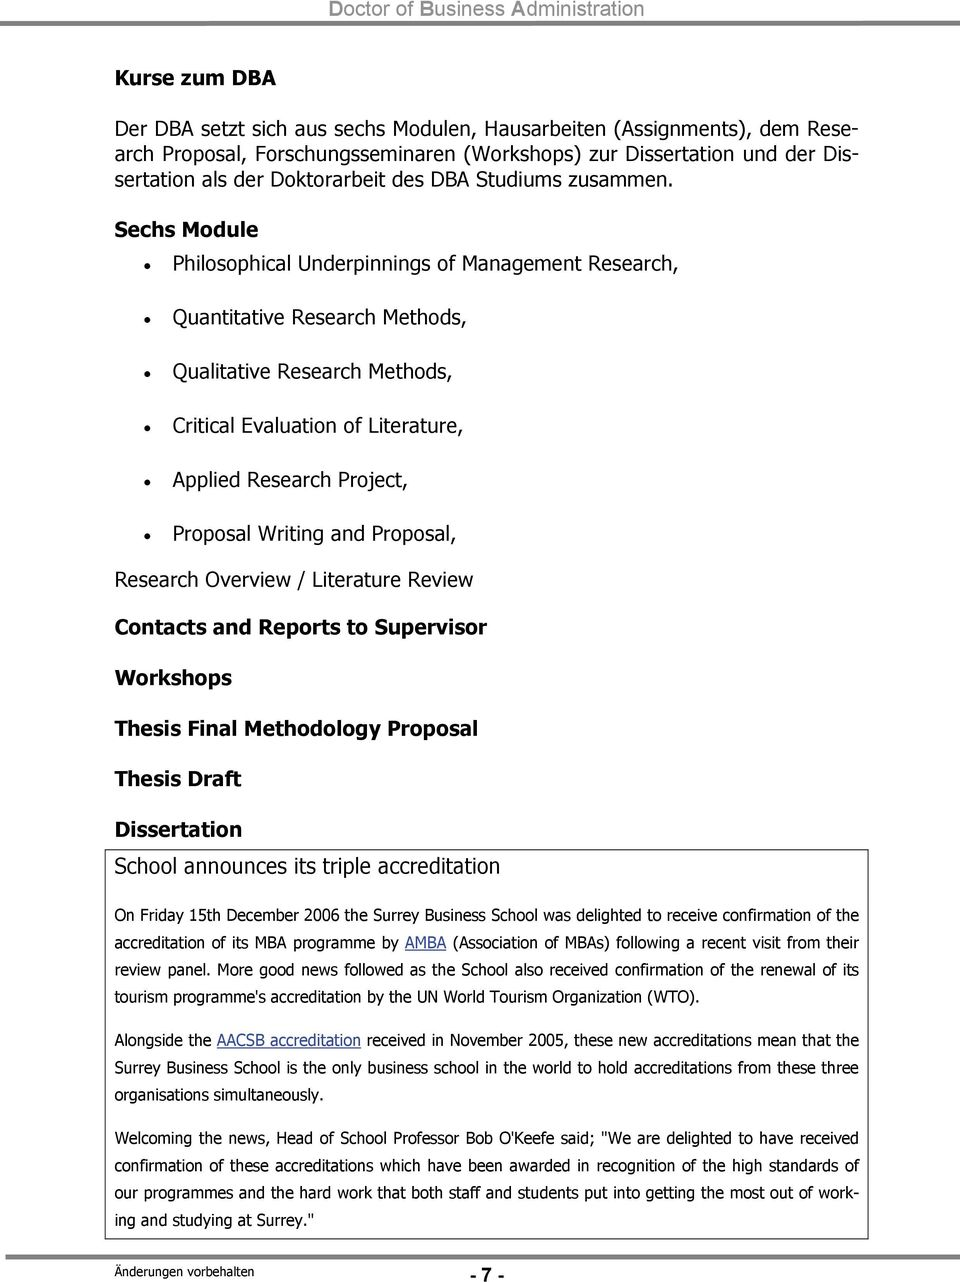 Sechs Module Philosophical Underpinnings of Management Research, Quantitative Research Methods, Qualitative Research Methods, Critical Evaluation of Literature, Applied Research Project, Proposal